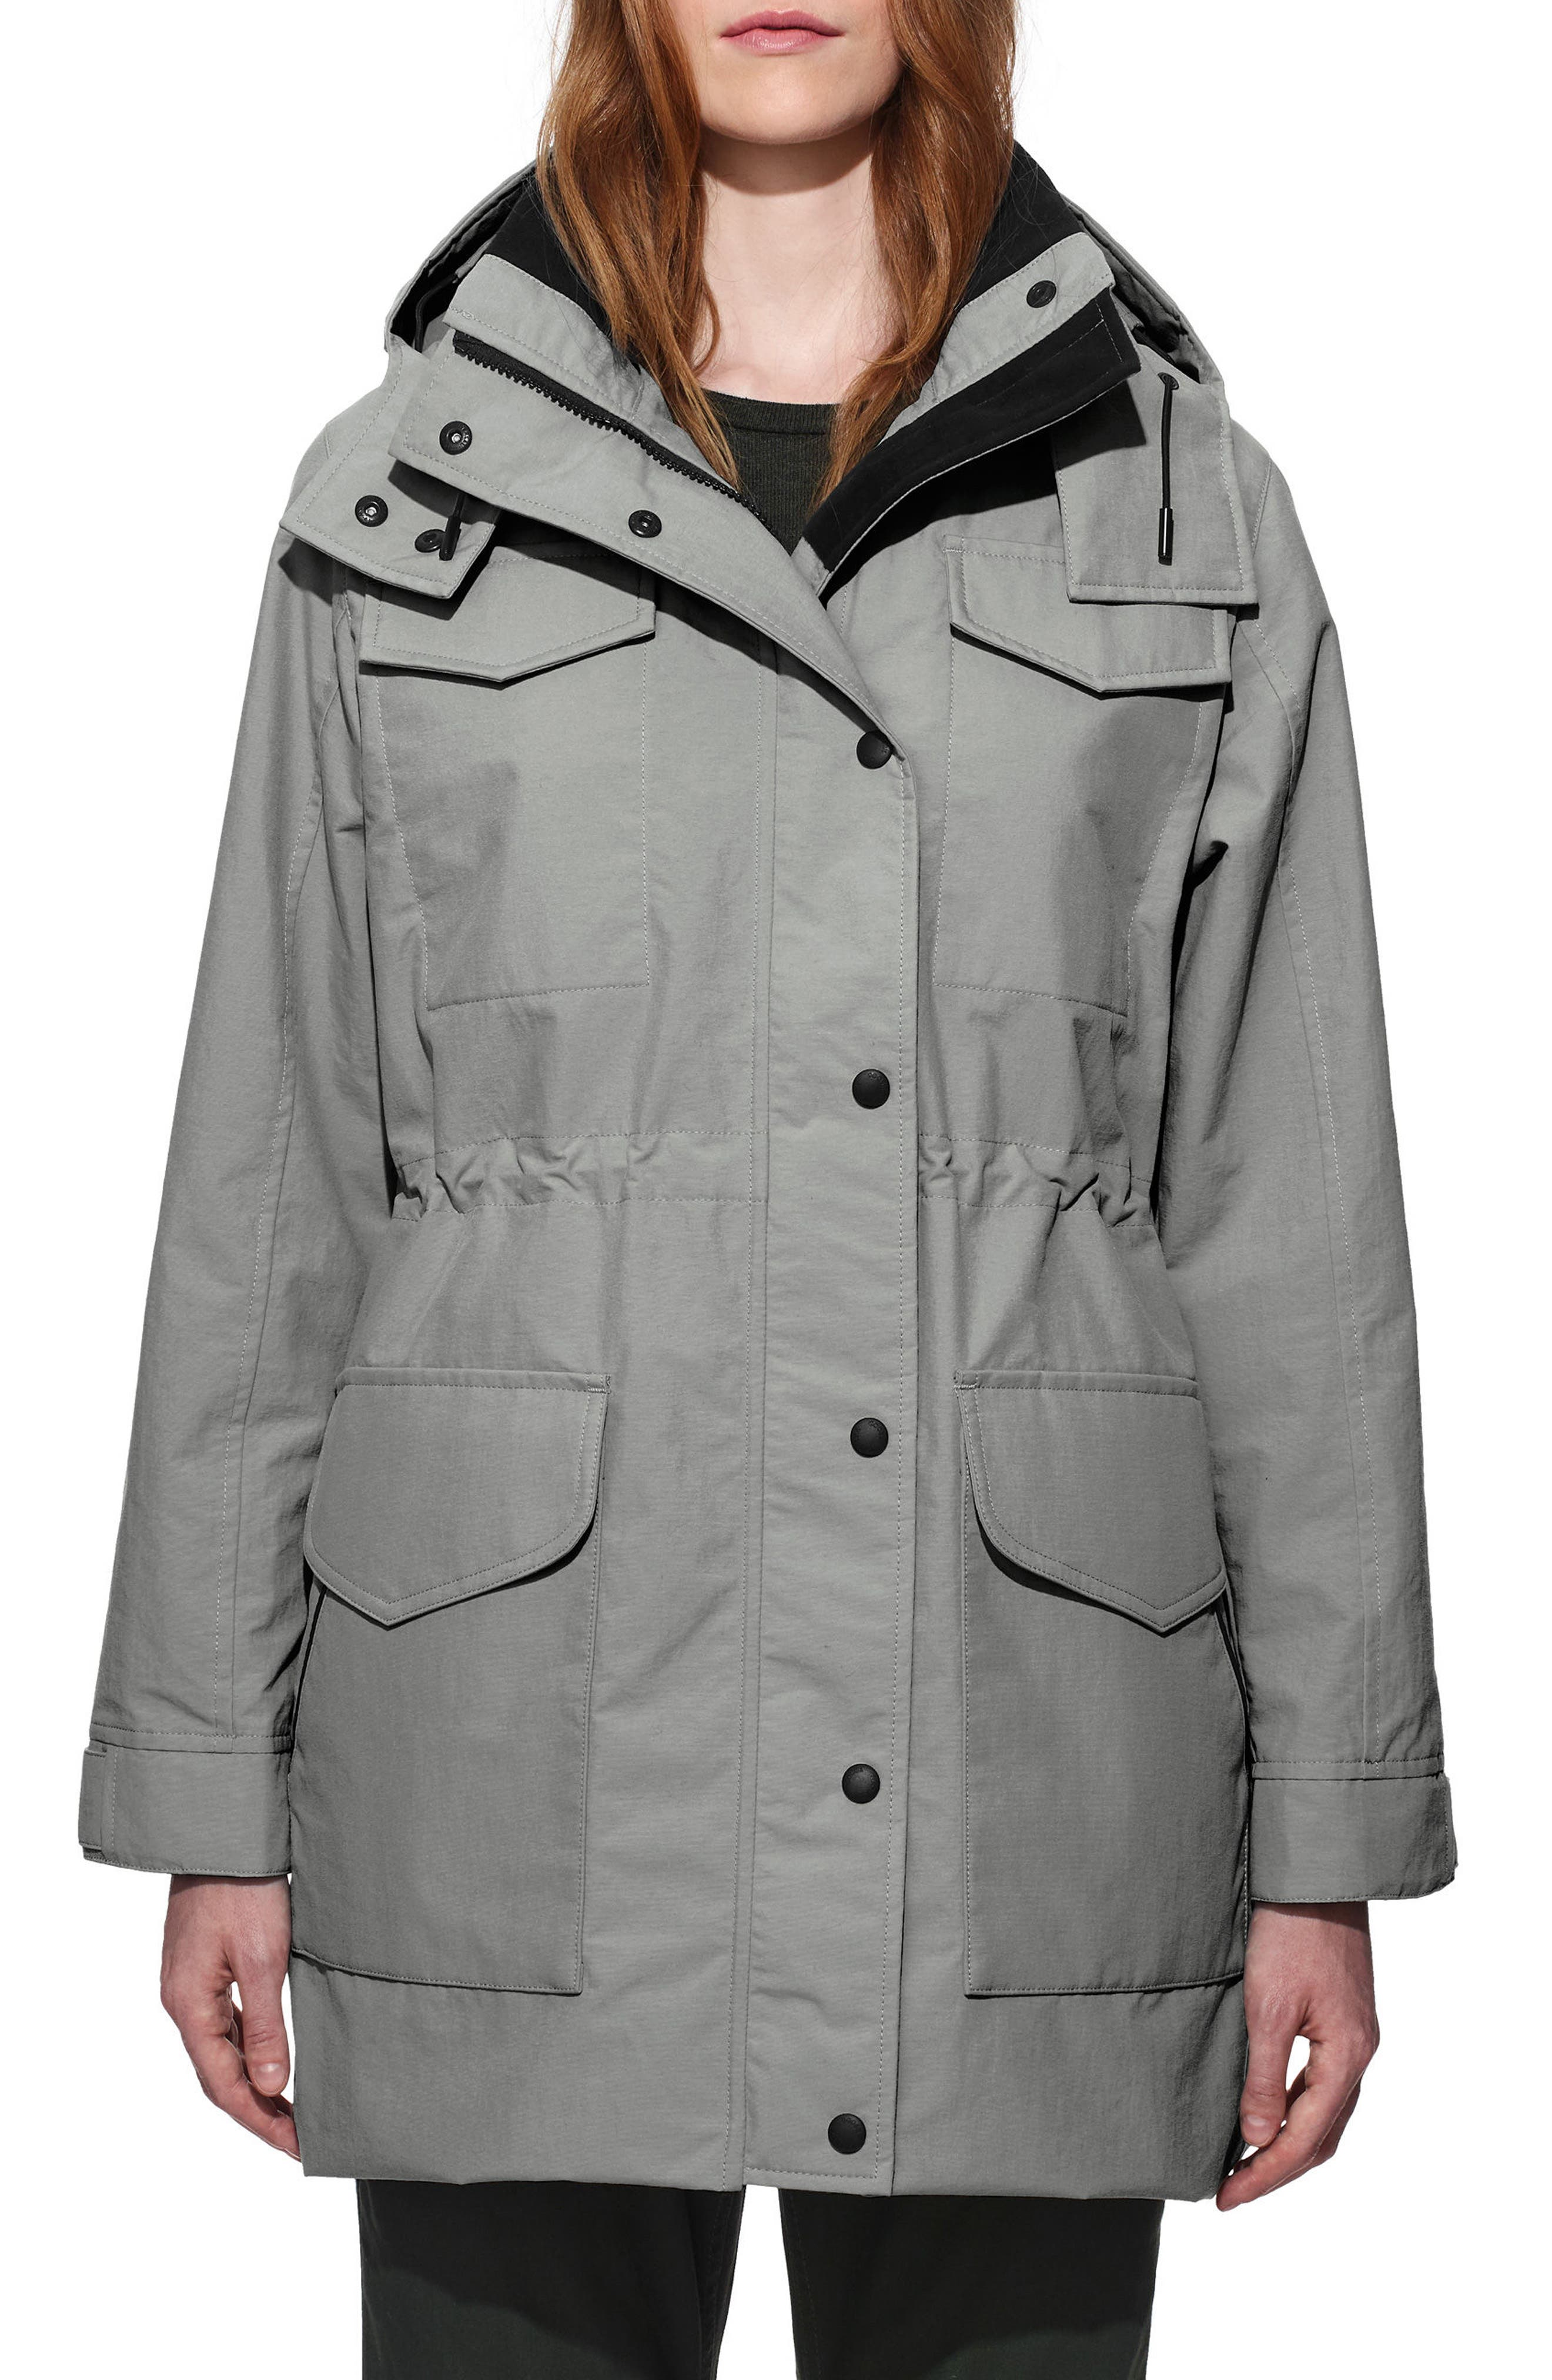 Portage Windproof Jacket,                         Main,                         color, PERMAFROST